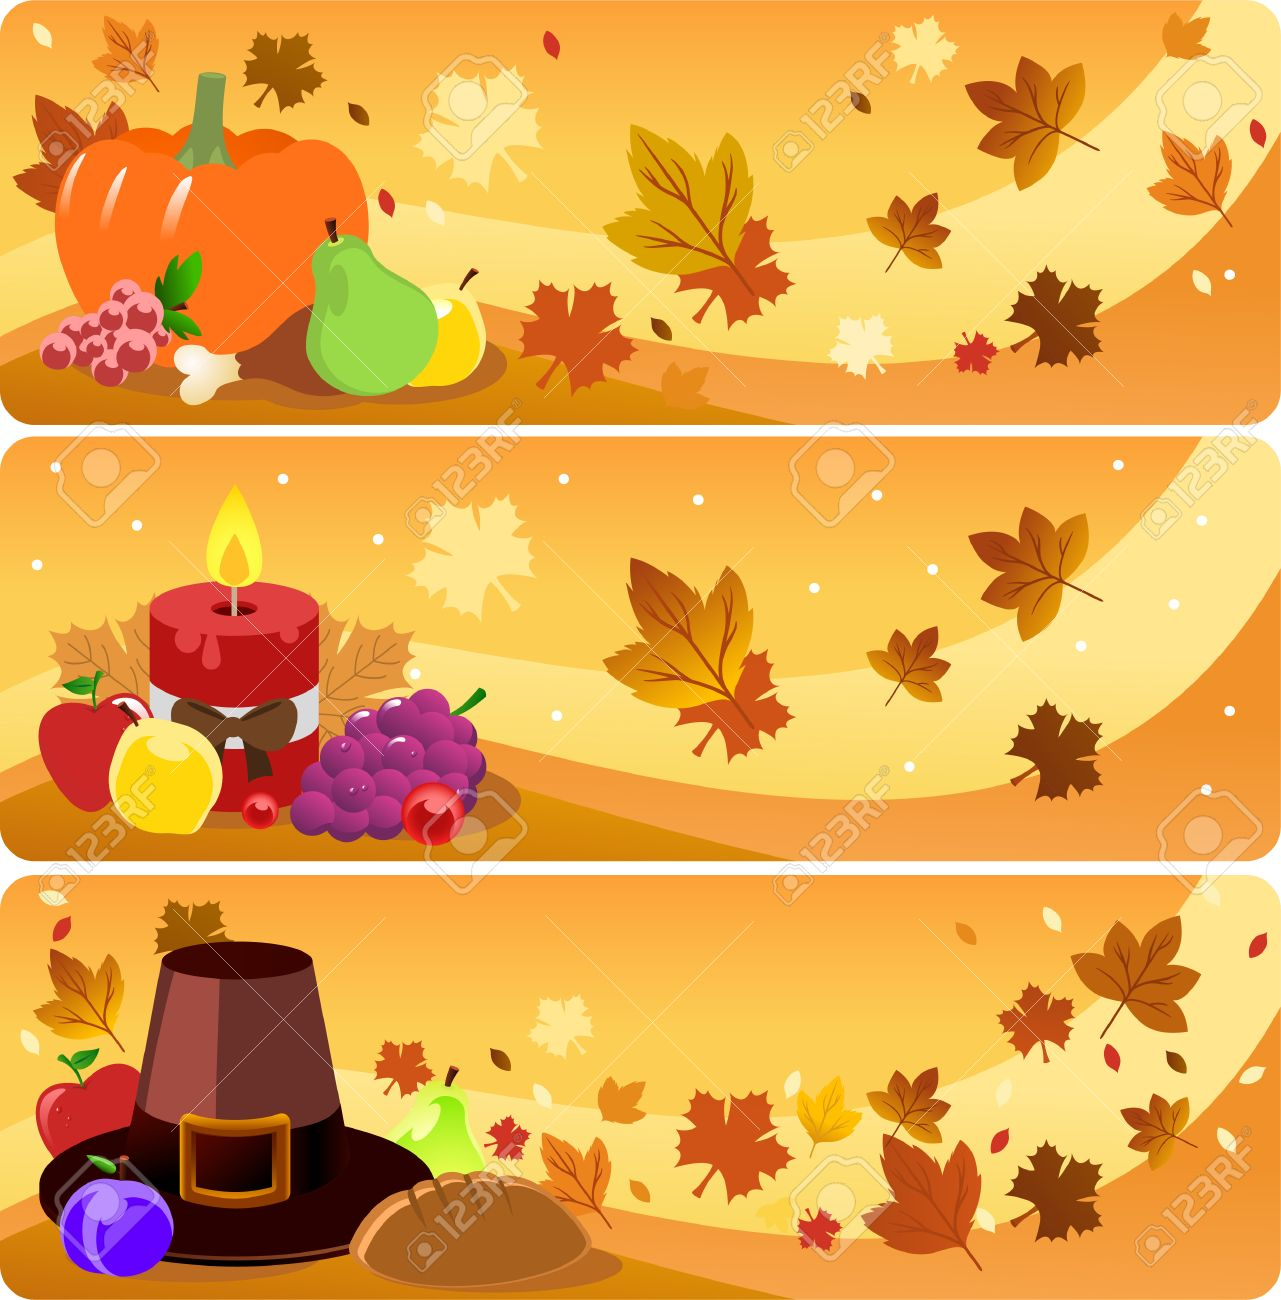 Thanksgiving Day Banner Illustrations Royalty Free Cliparts ...